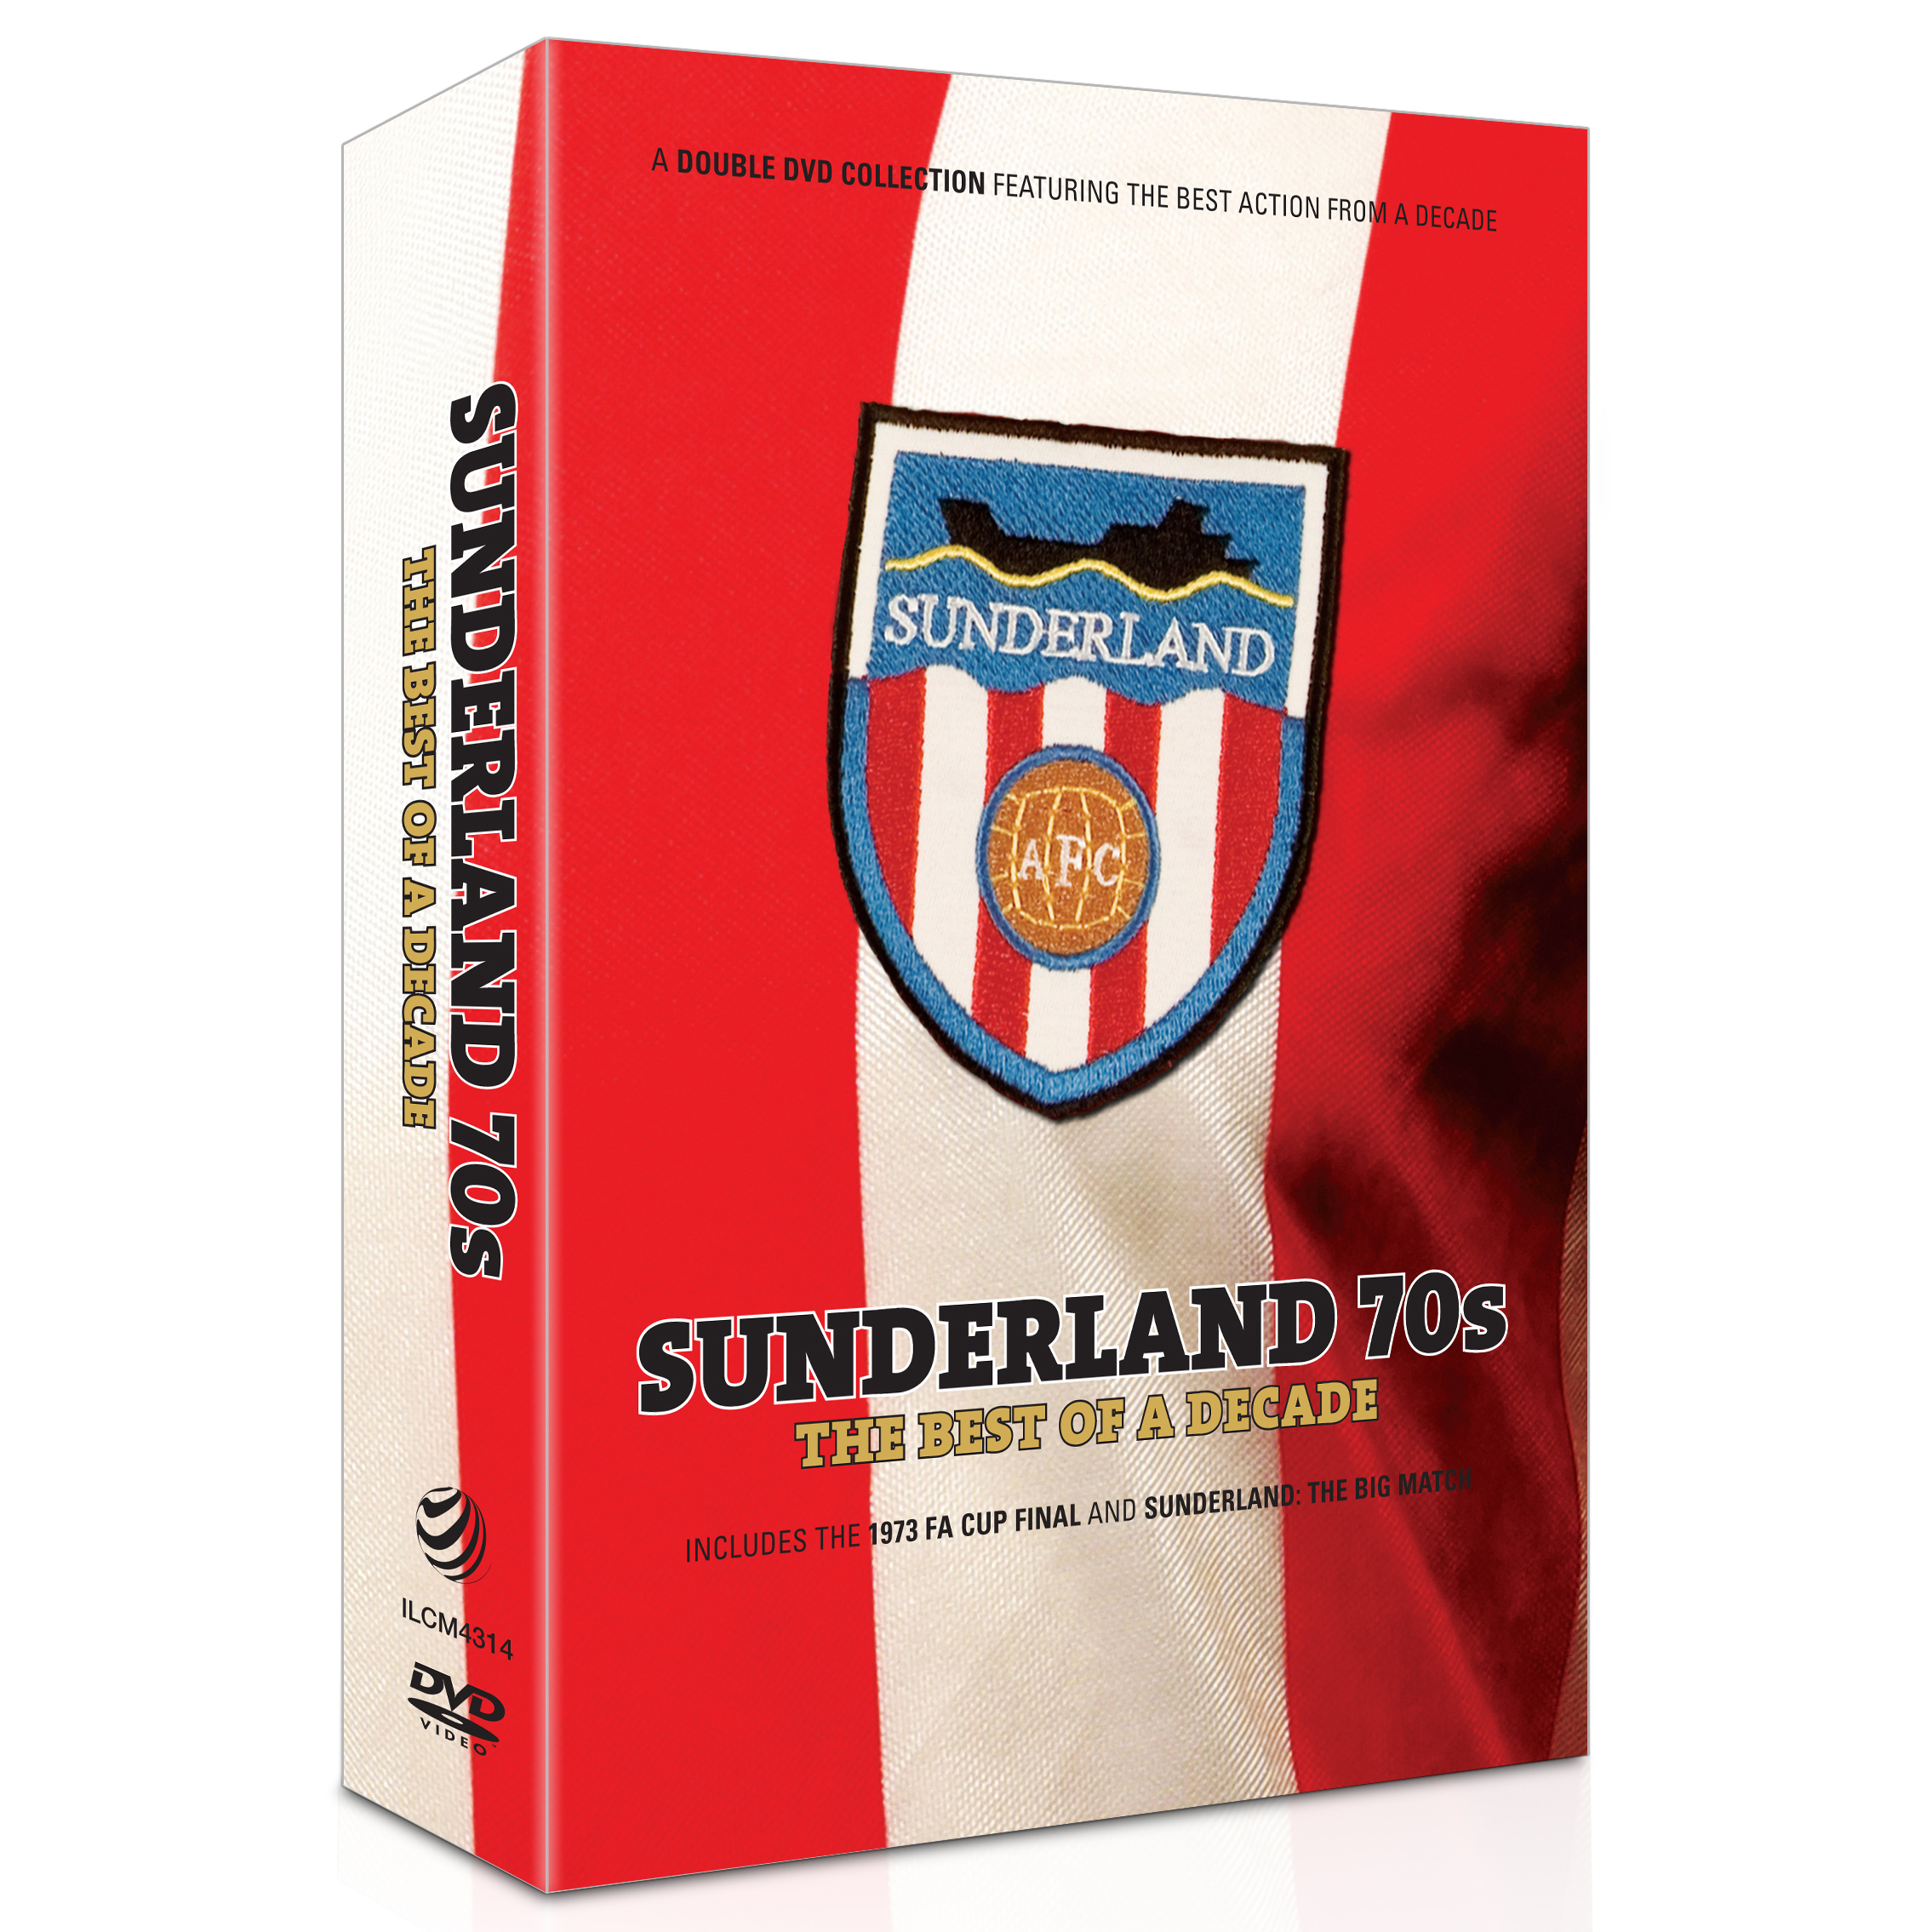 Sunderland The Best of a Decade DVD Boxset